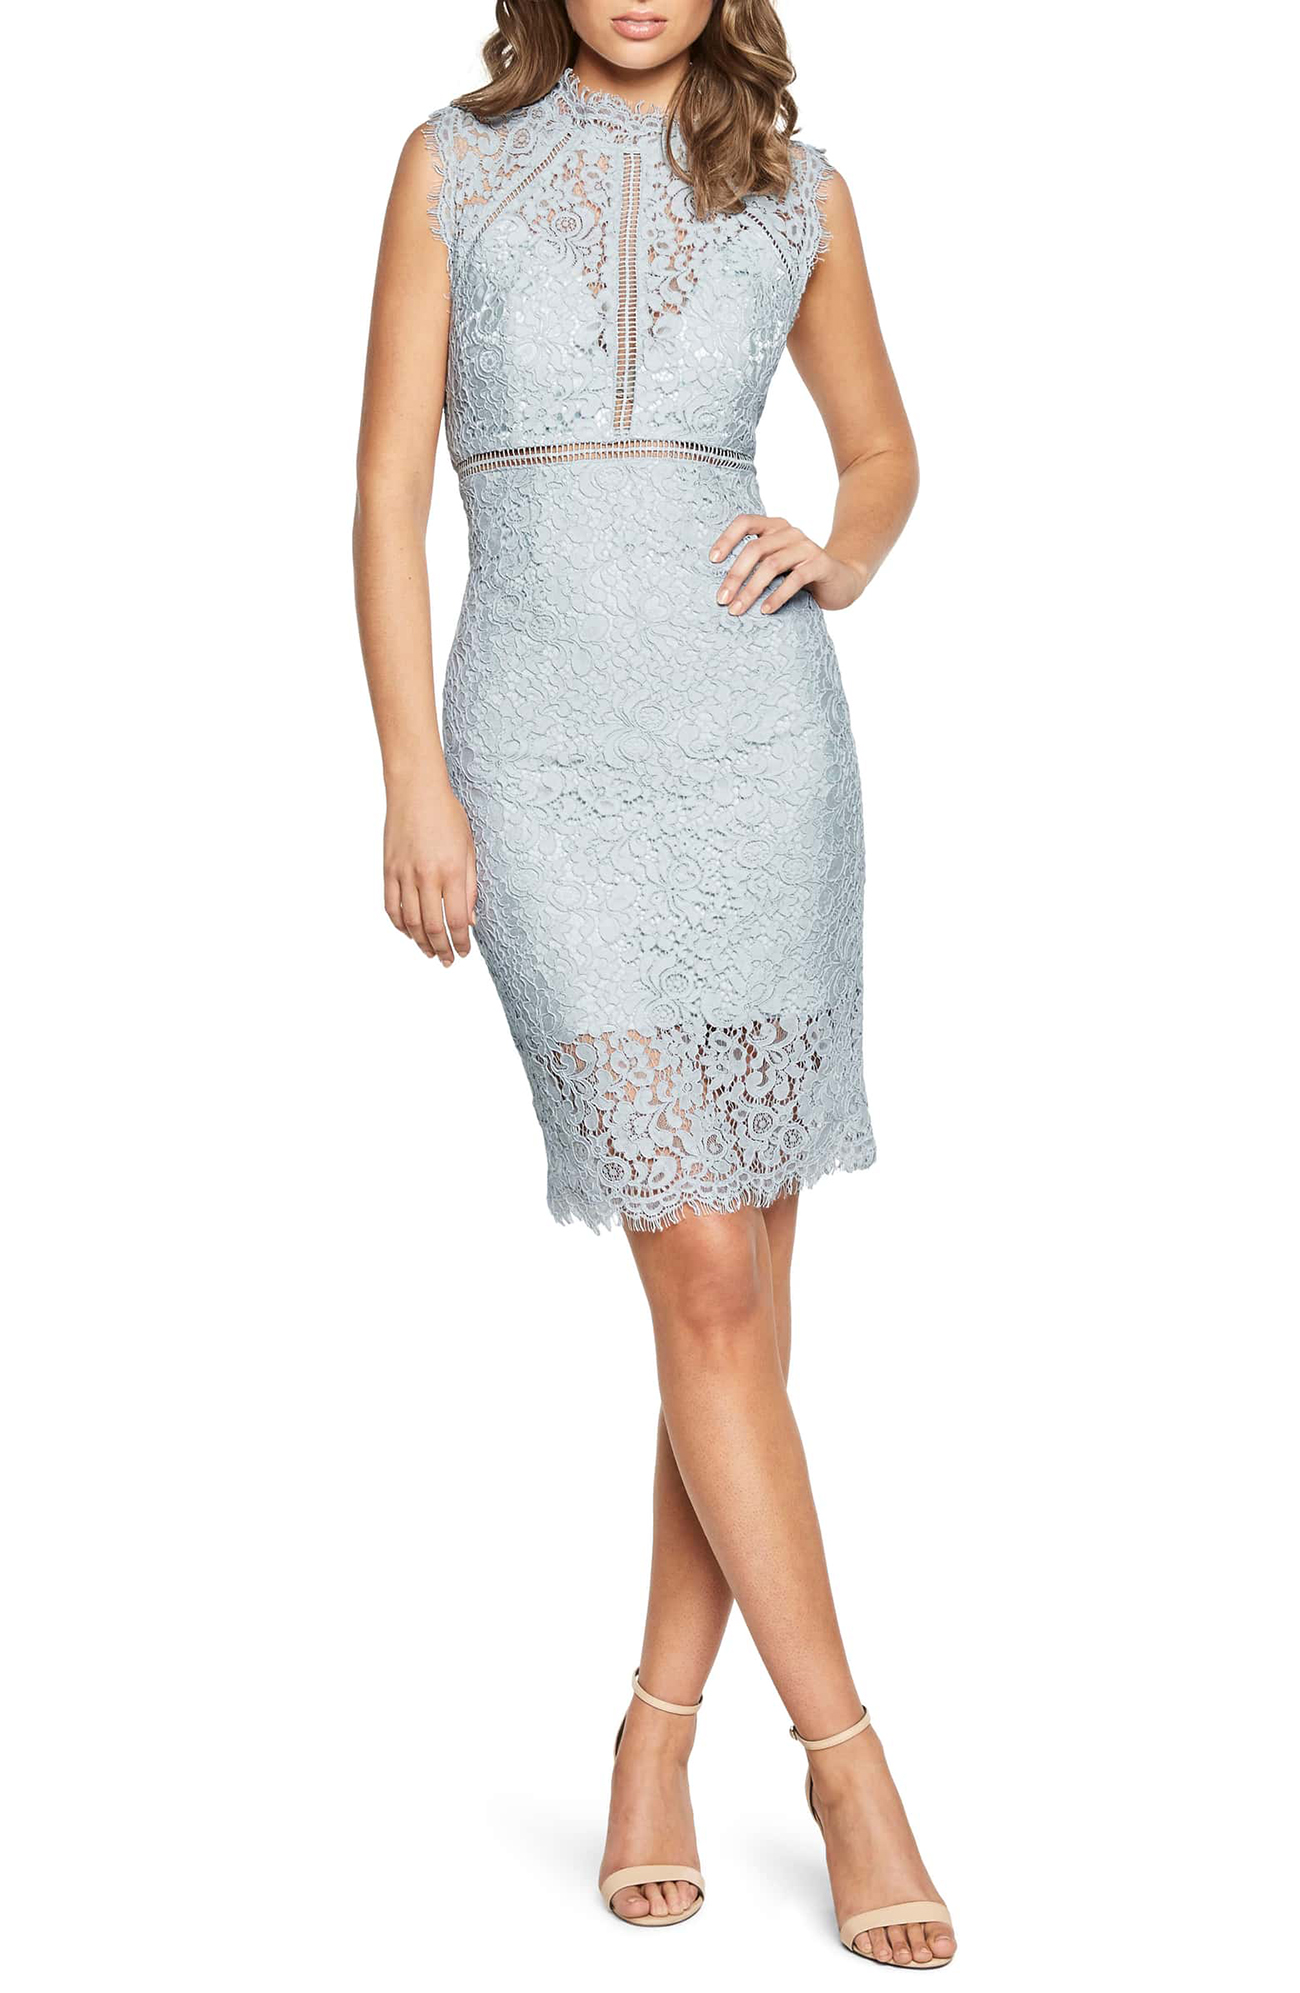 What to Wear to Spring Wedding Cocktail Dress